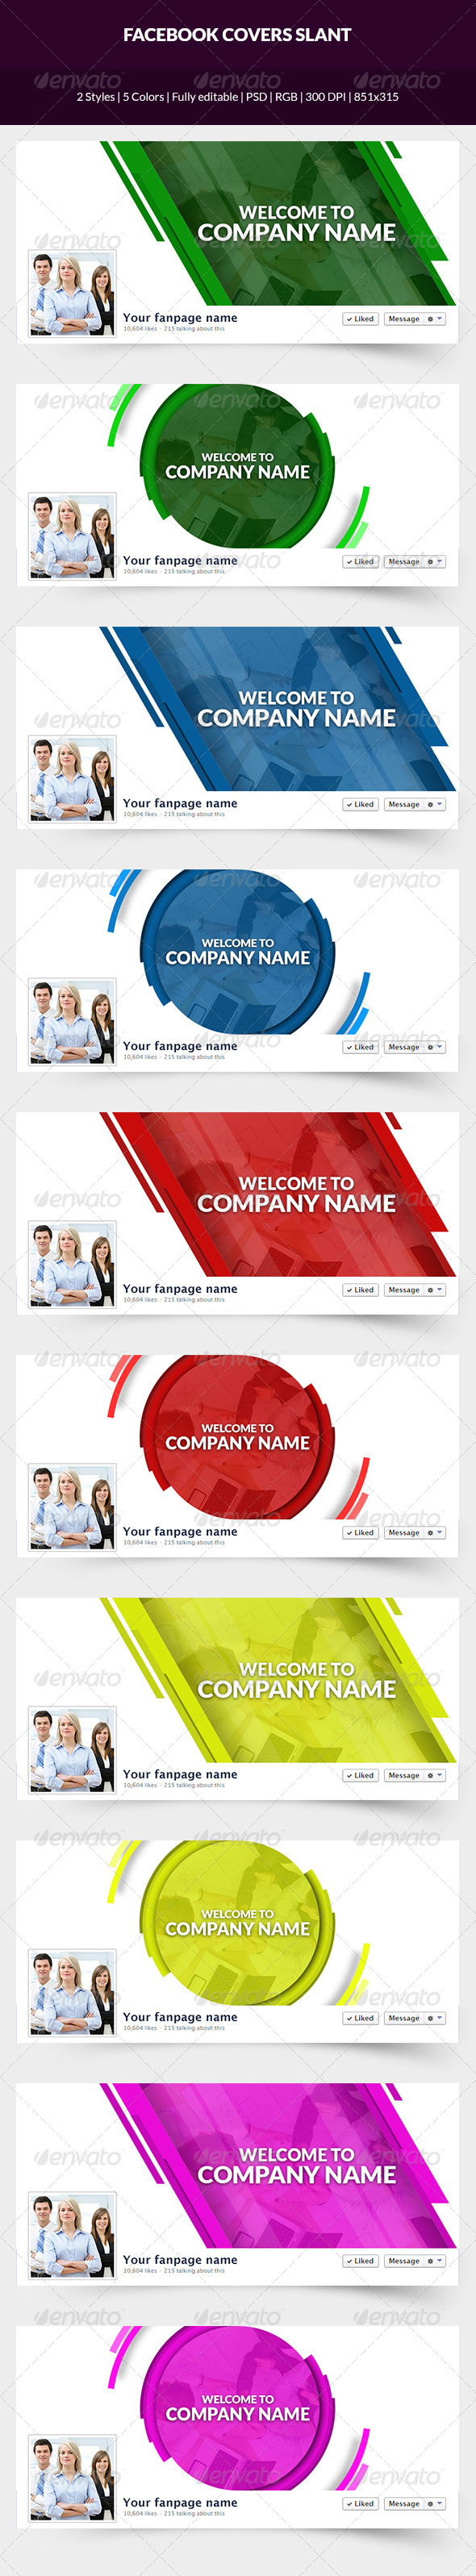 GraphicRiver Facebook Covers Slant 7485822